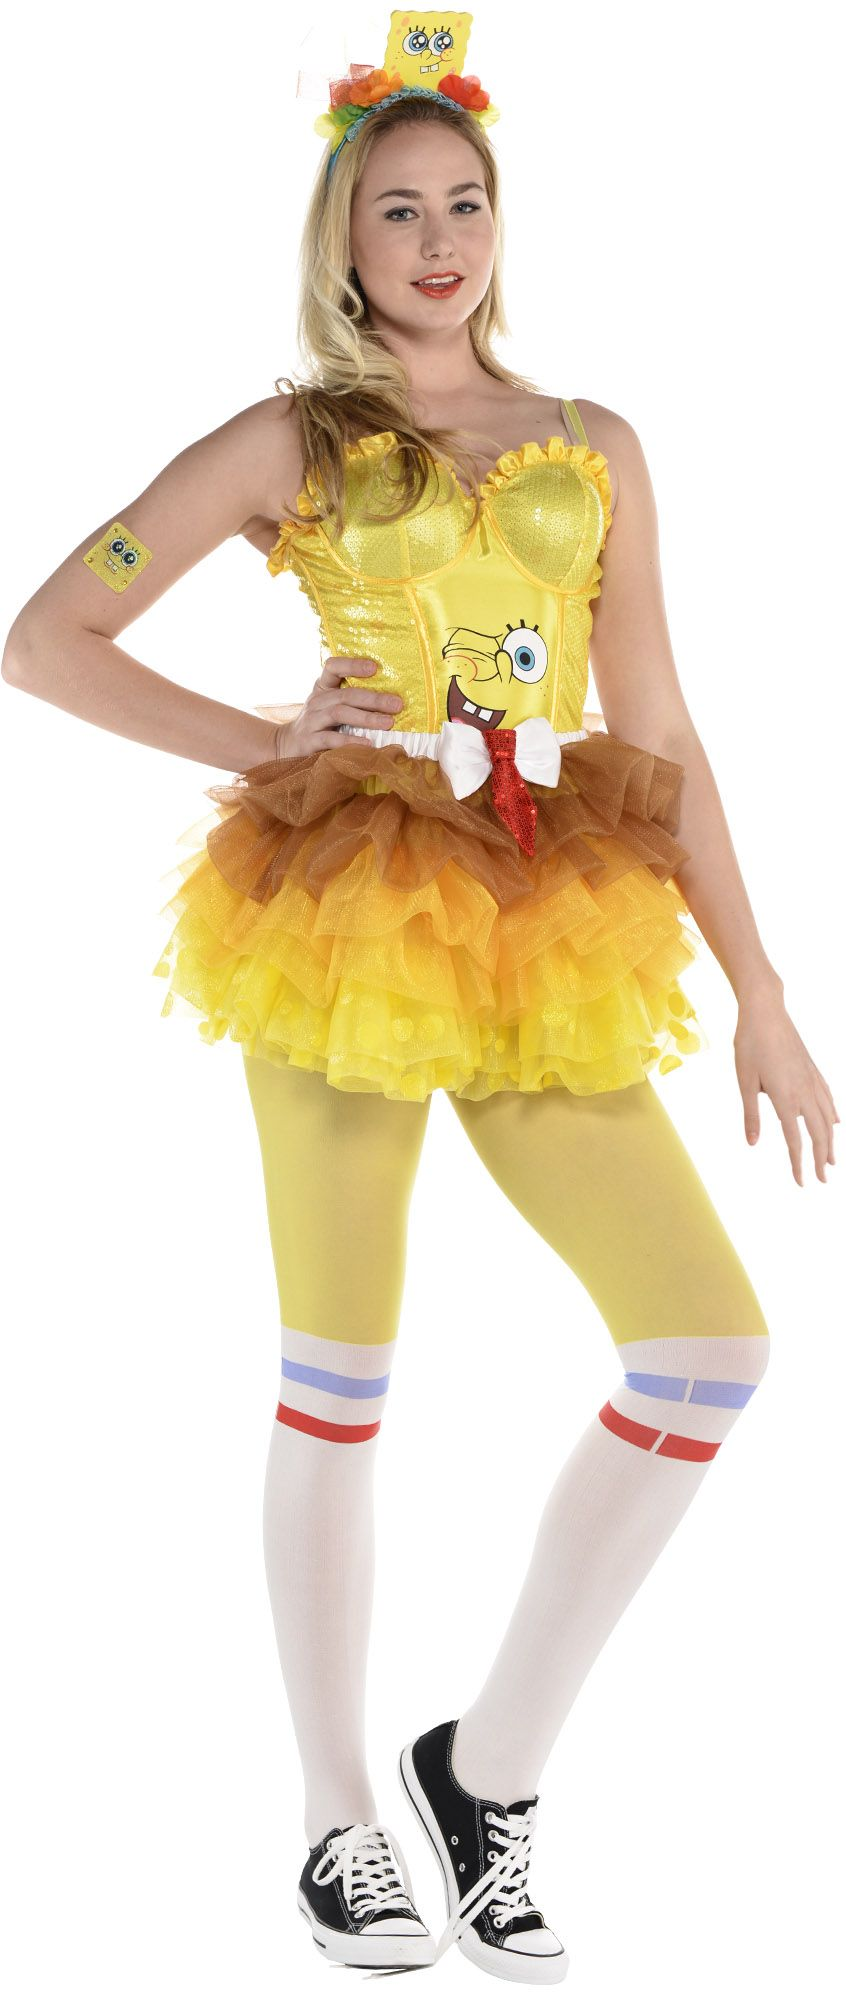 Create Your Own Look - Female Sponge Bob #1